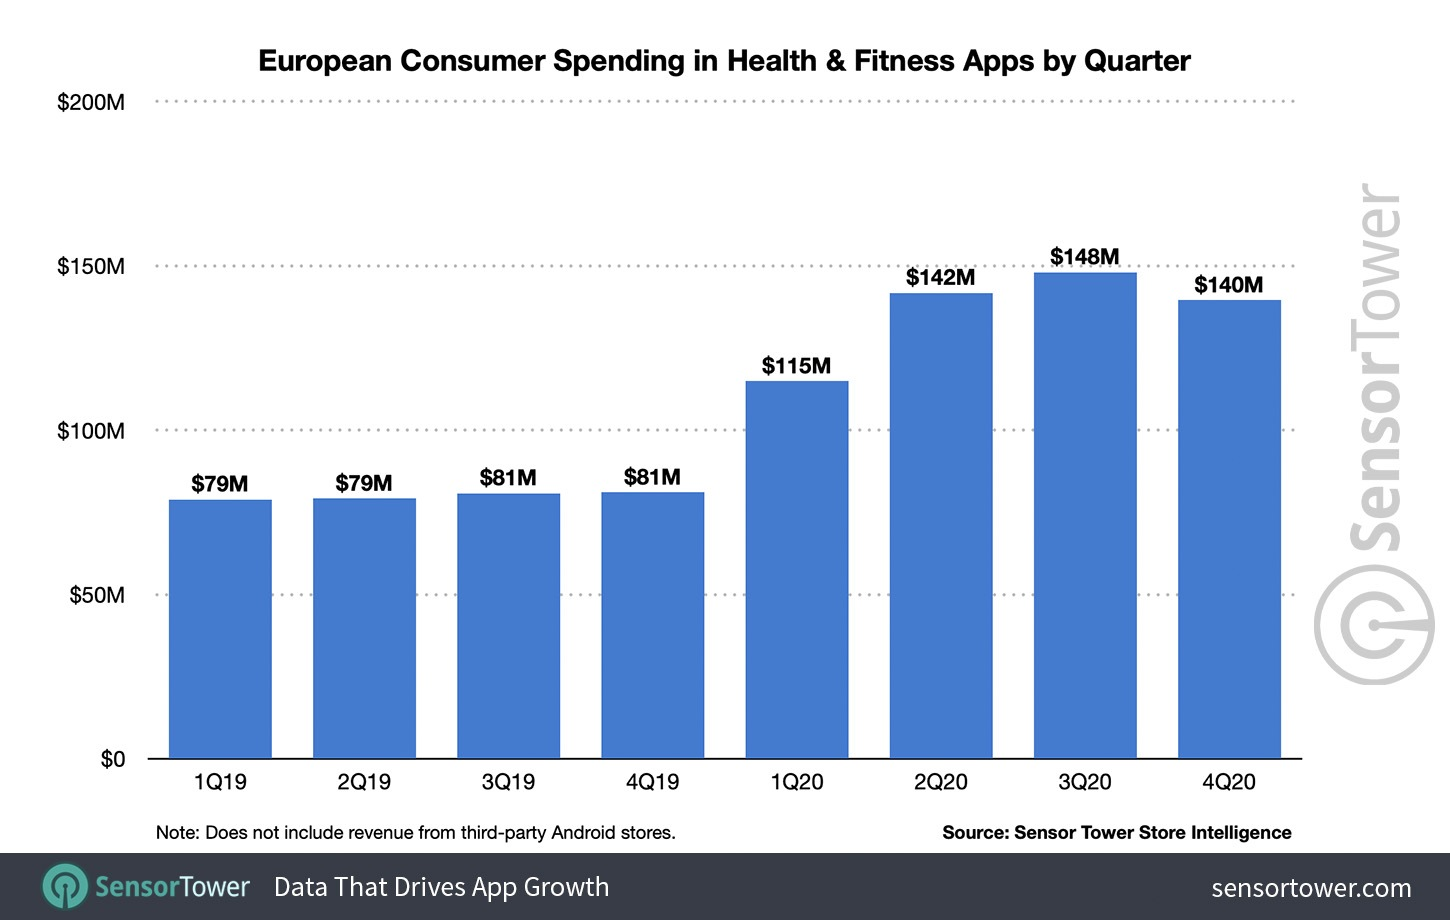 Fitness and health in-app spending was up 70% in 2020